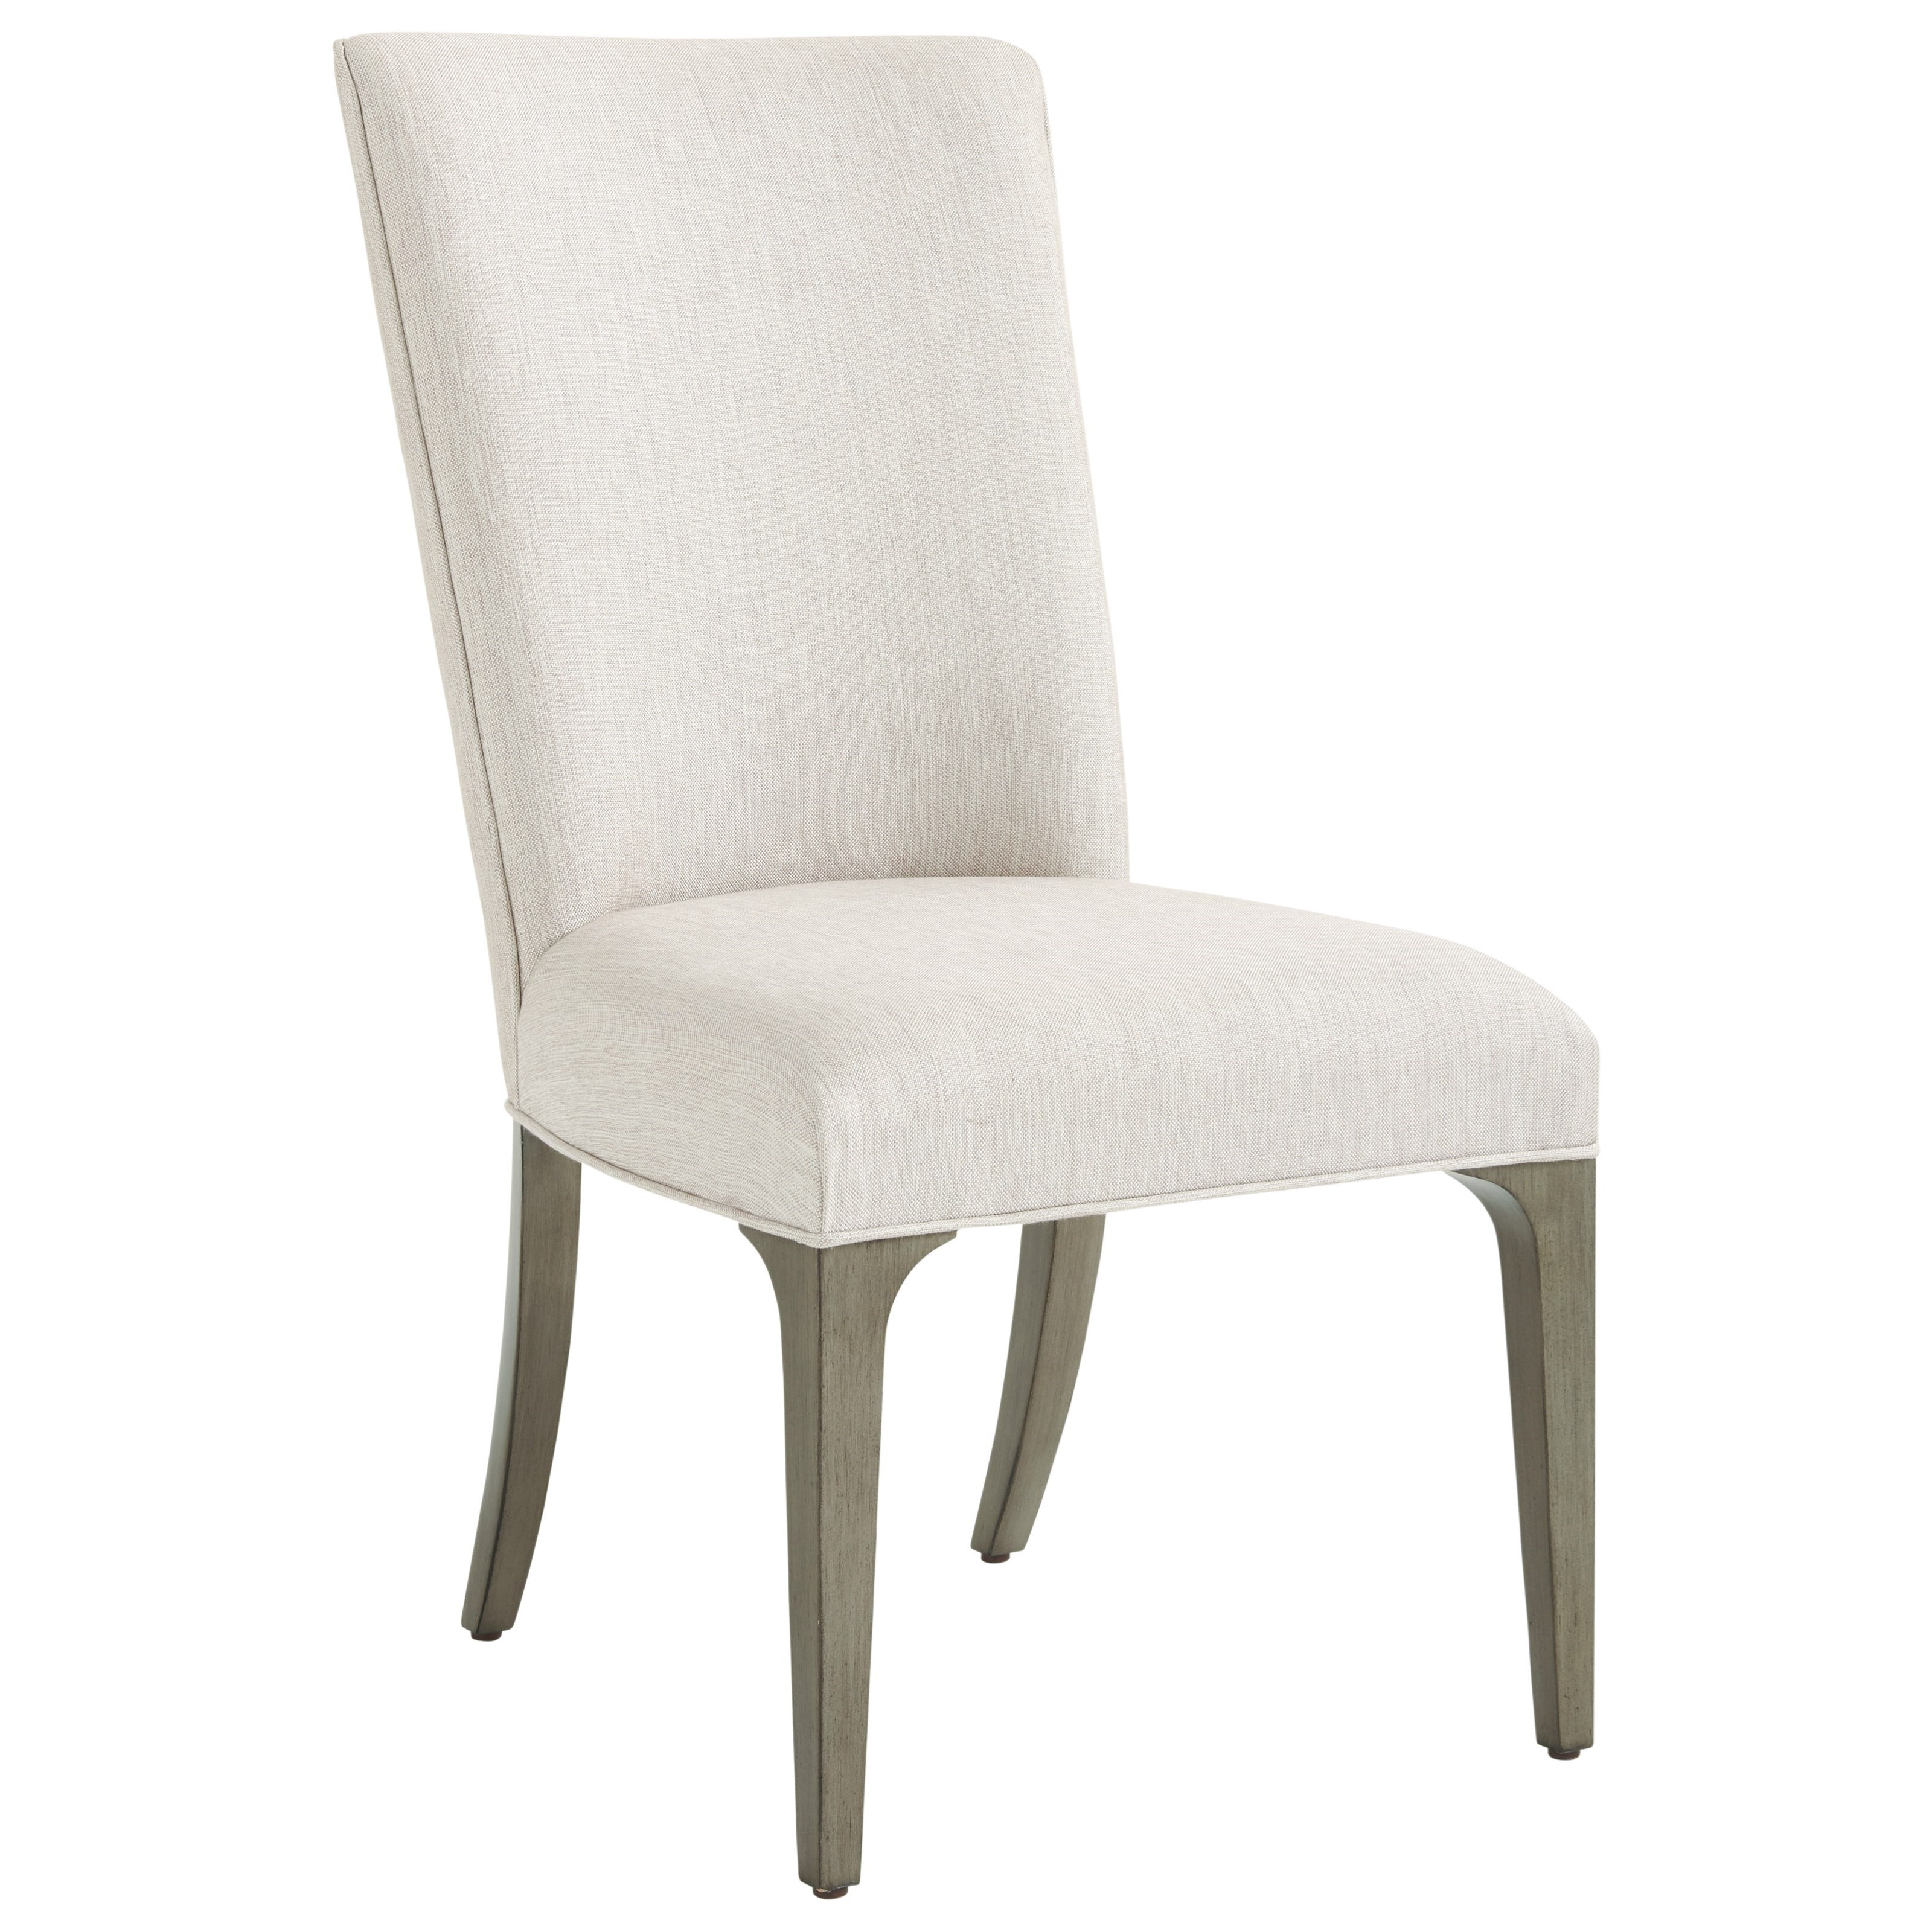 Ariana Bellamy Upholstered Side Chair (married fab) by Lexington at Sprintz Furniture